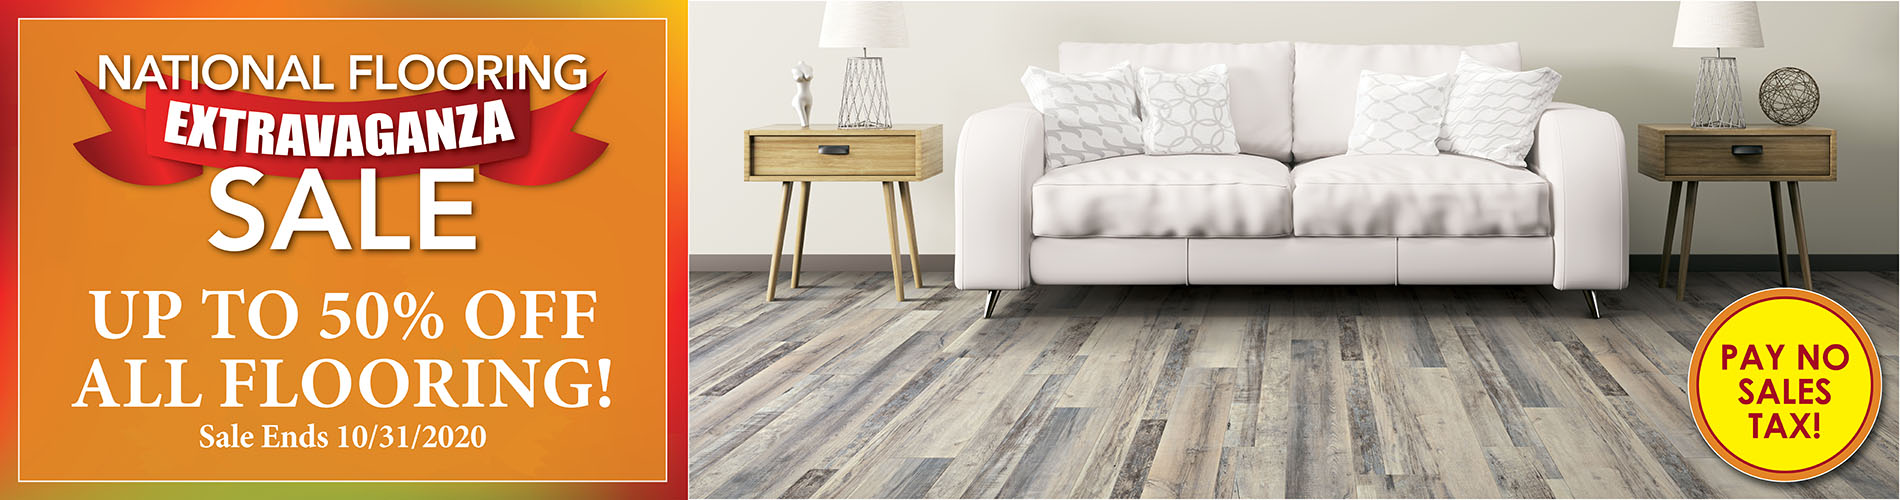 National Flooring Extravaganza Sale! Save up to 50% off all flooring! Hurry in, sale ends 10/31/2020 – only at Fine Floorz in Walnut Creek, California.